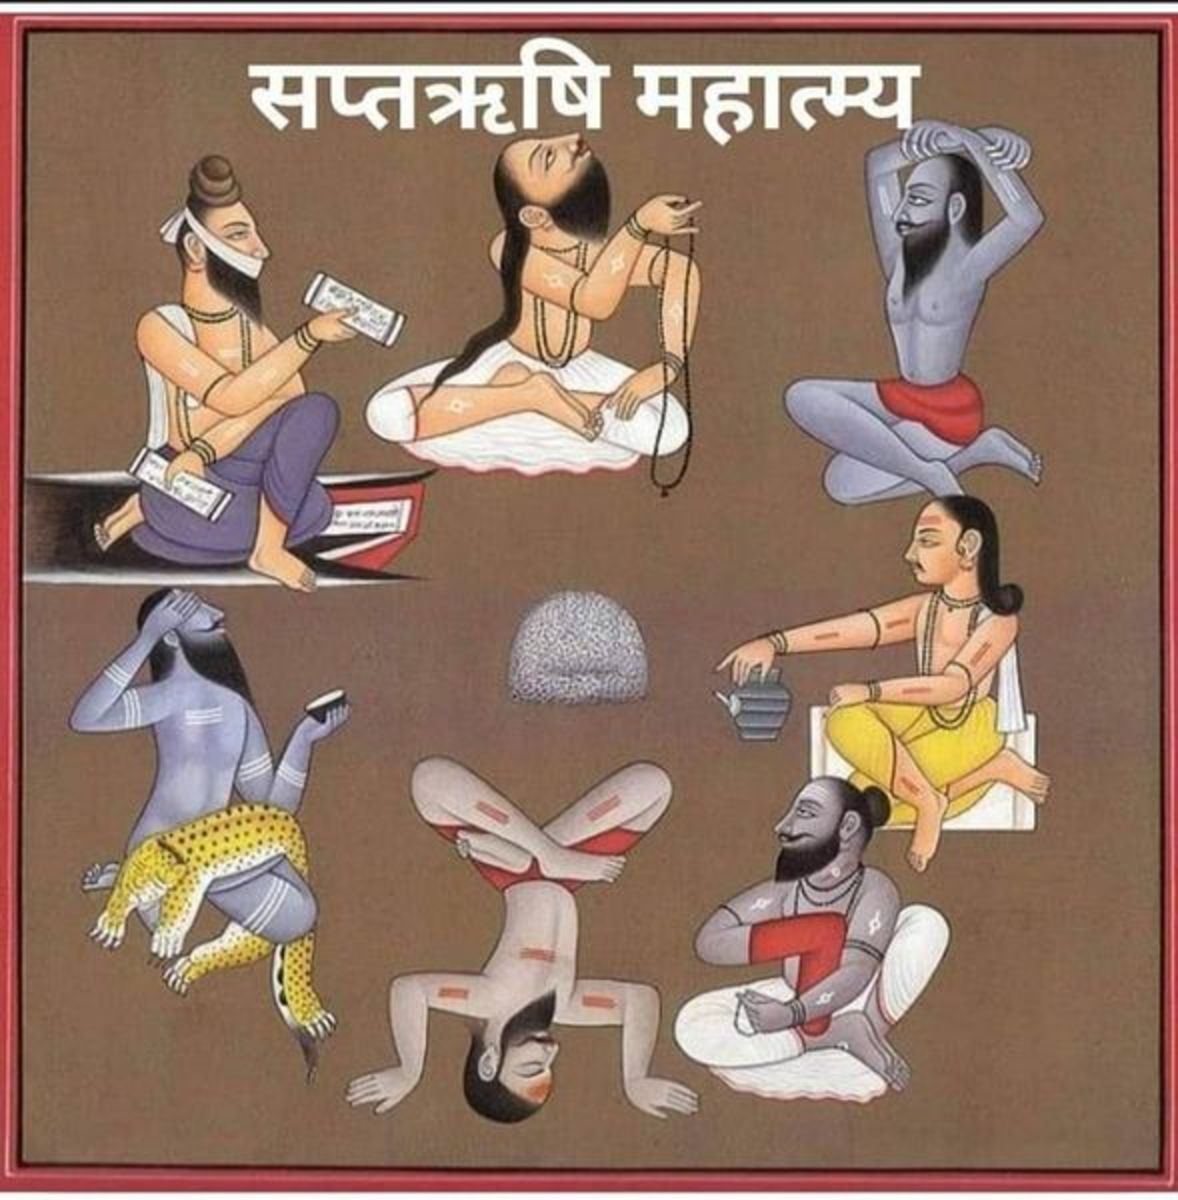 7 sages of seventh manvantar have contributed amazingly to make mankind happy and prosperous. Today is the festival of remembering these seven sages and getting inspiration from their lives. Give the new generation a thin introduction of these seven